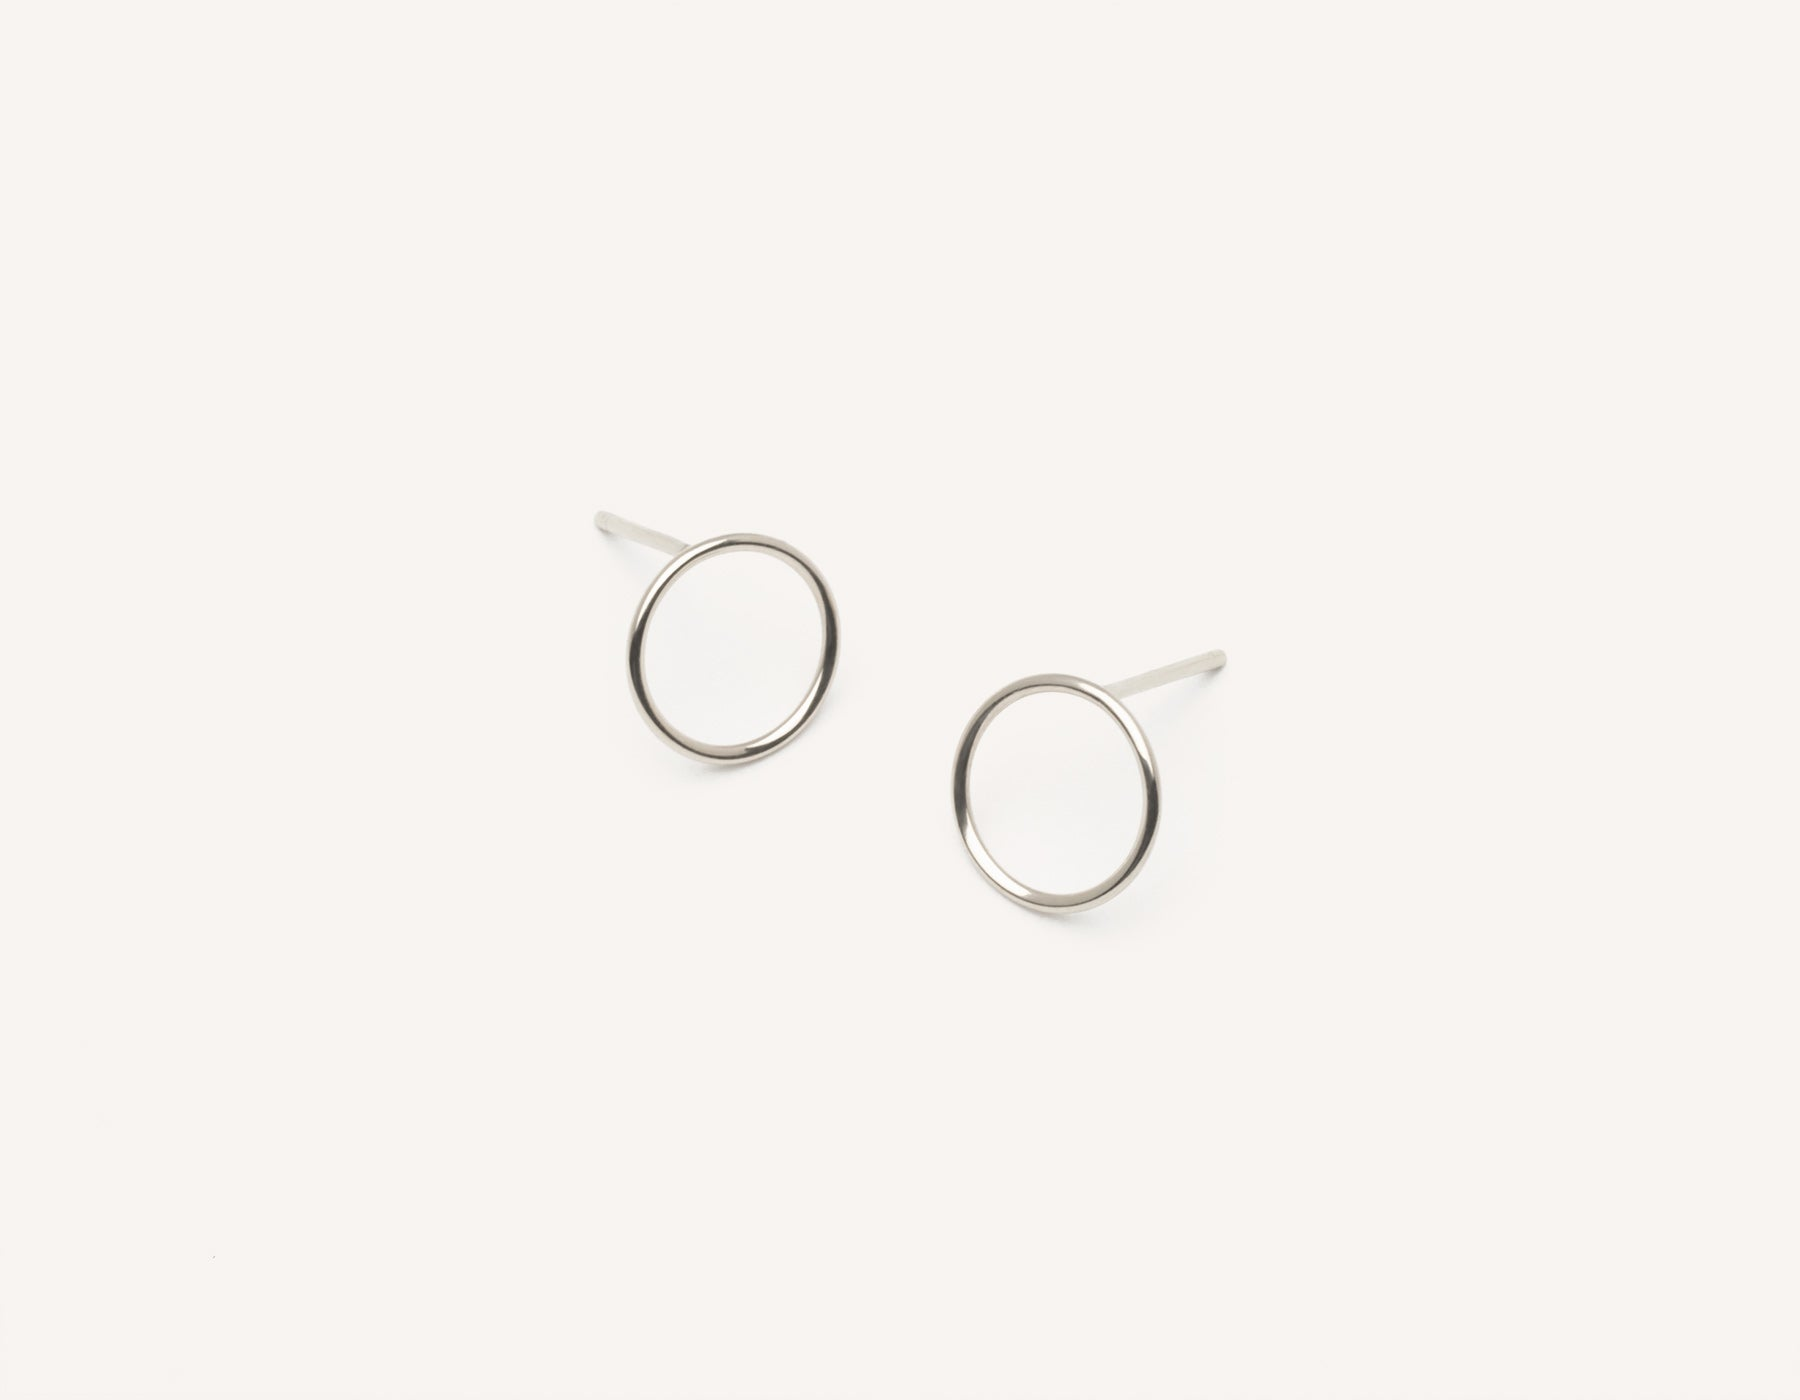 Simple classic Circle Stud Earrings 14k solid gold Vrai & Oro minimalist jewelry, 14K White Gold